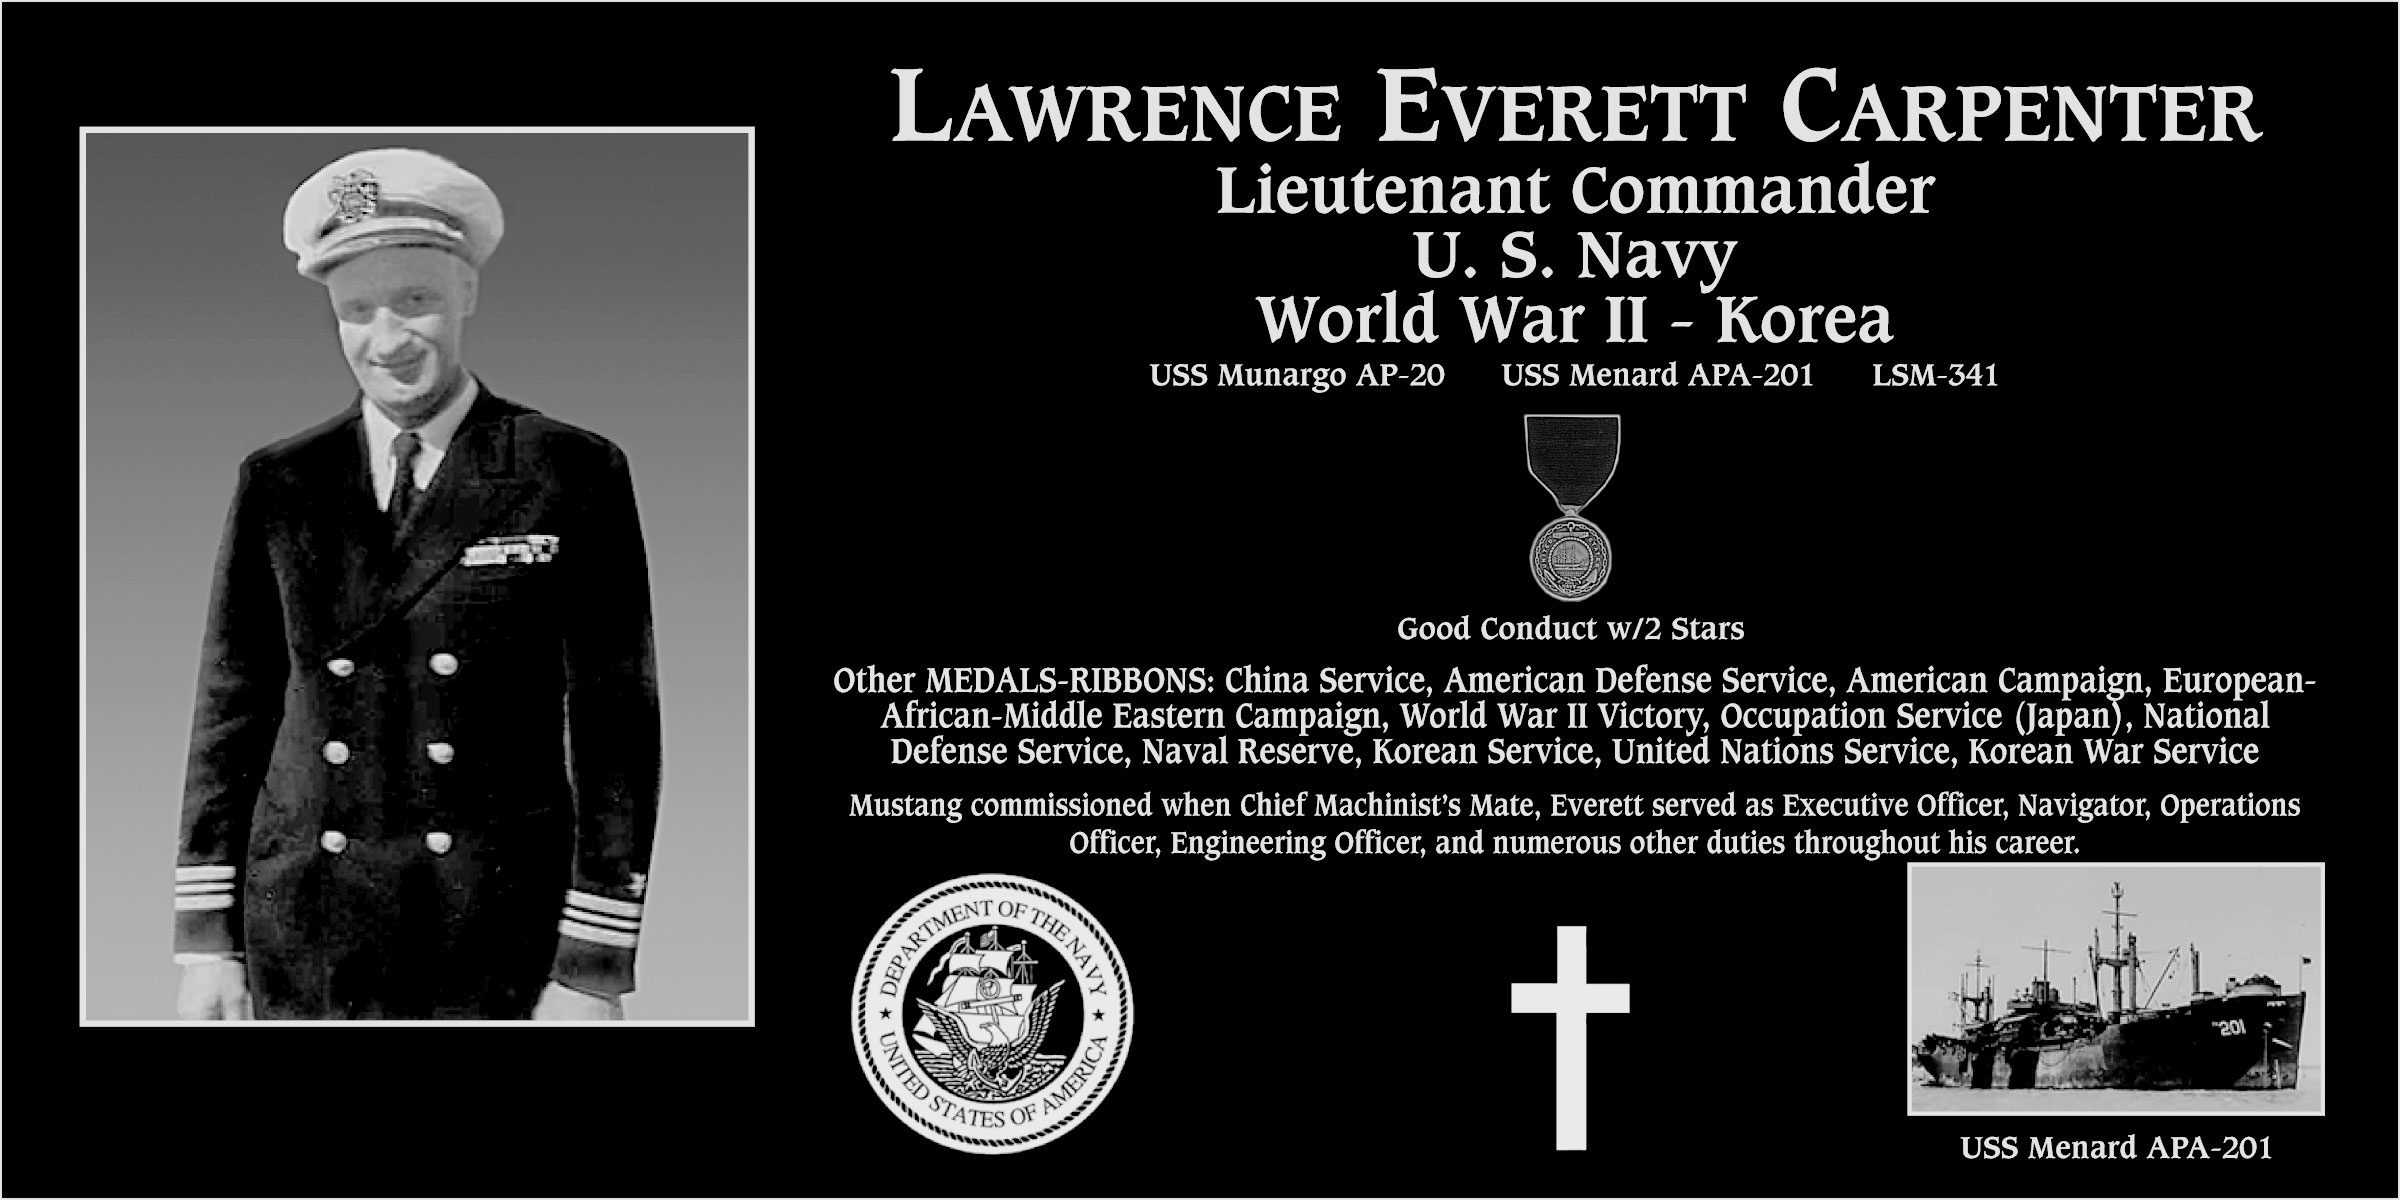 Lawrence Everett Carpenter